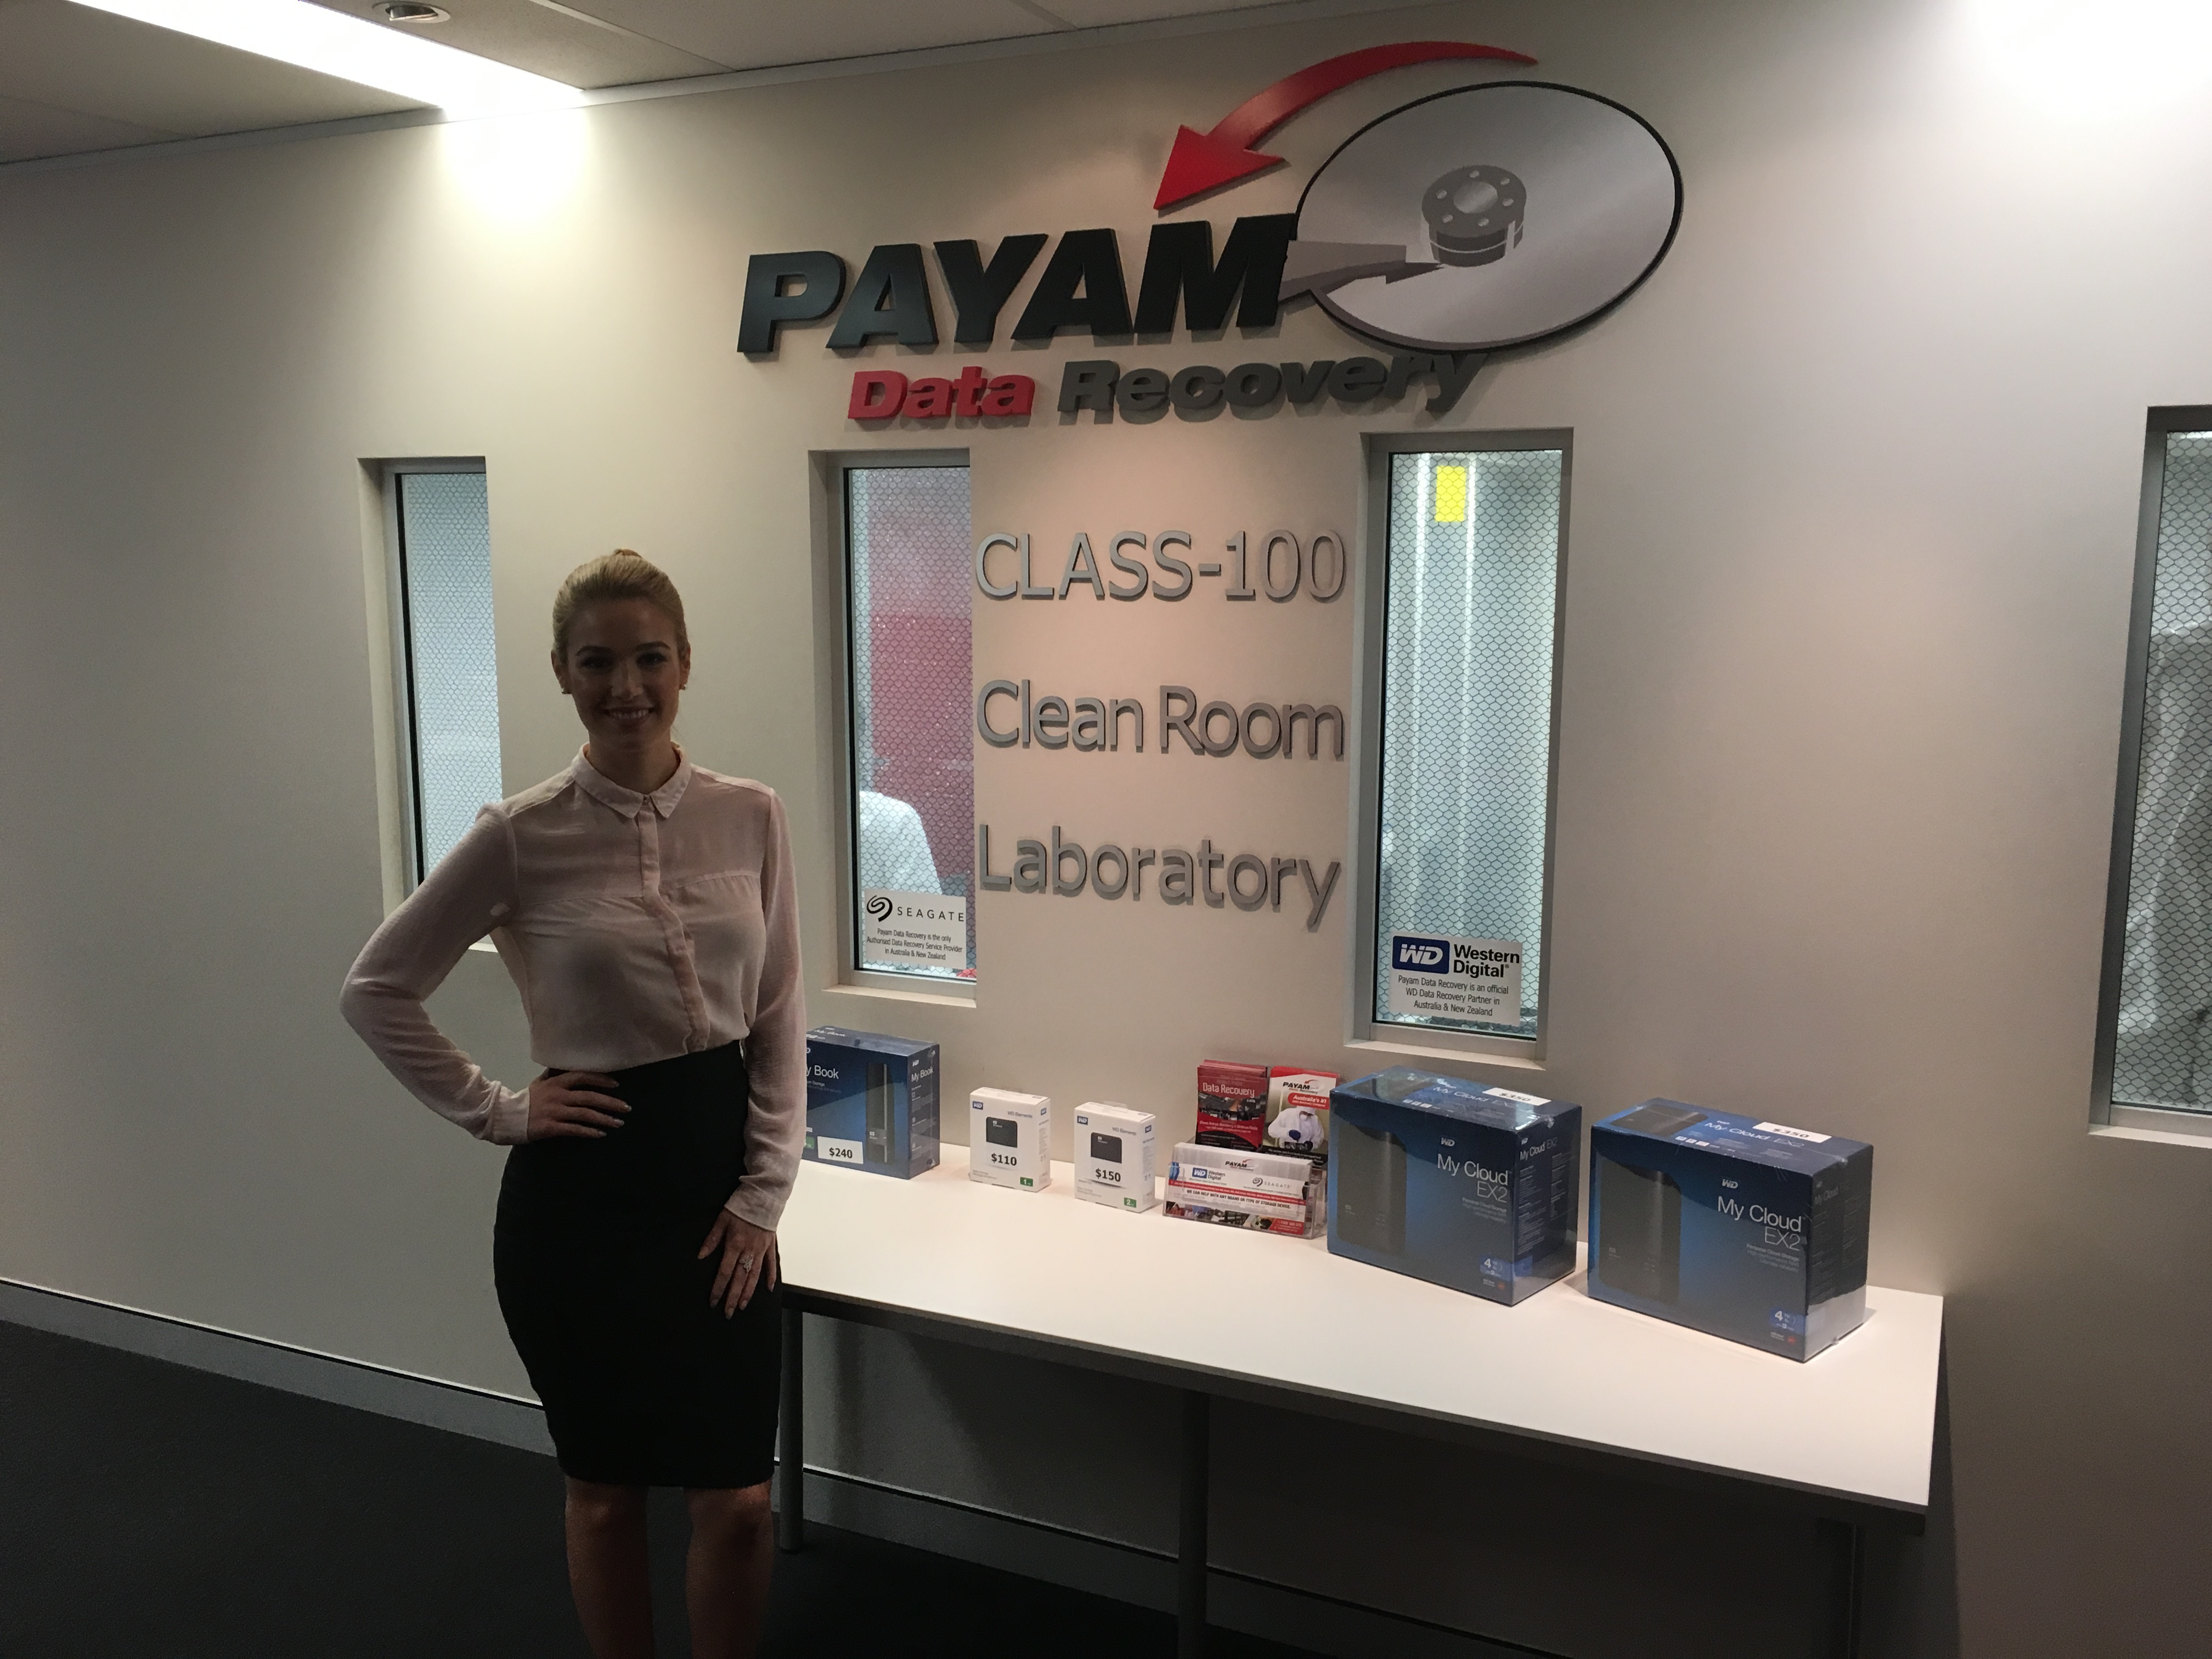 Payam Data Recovery Clean Room